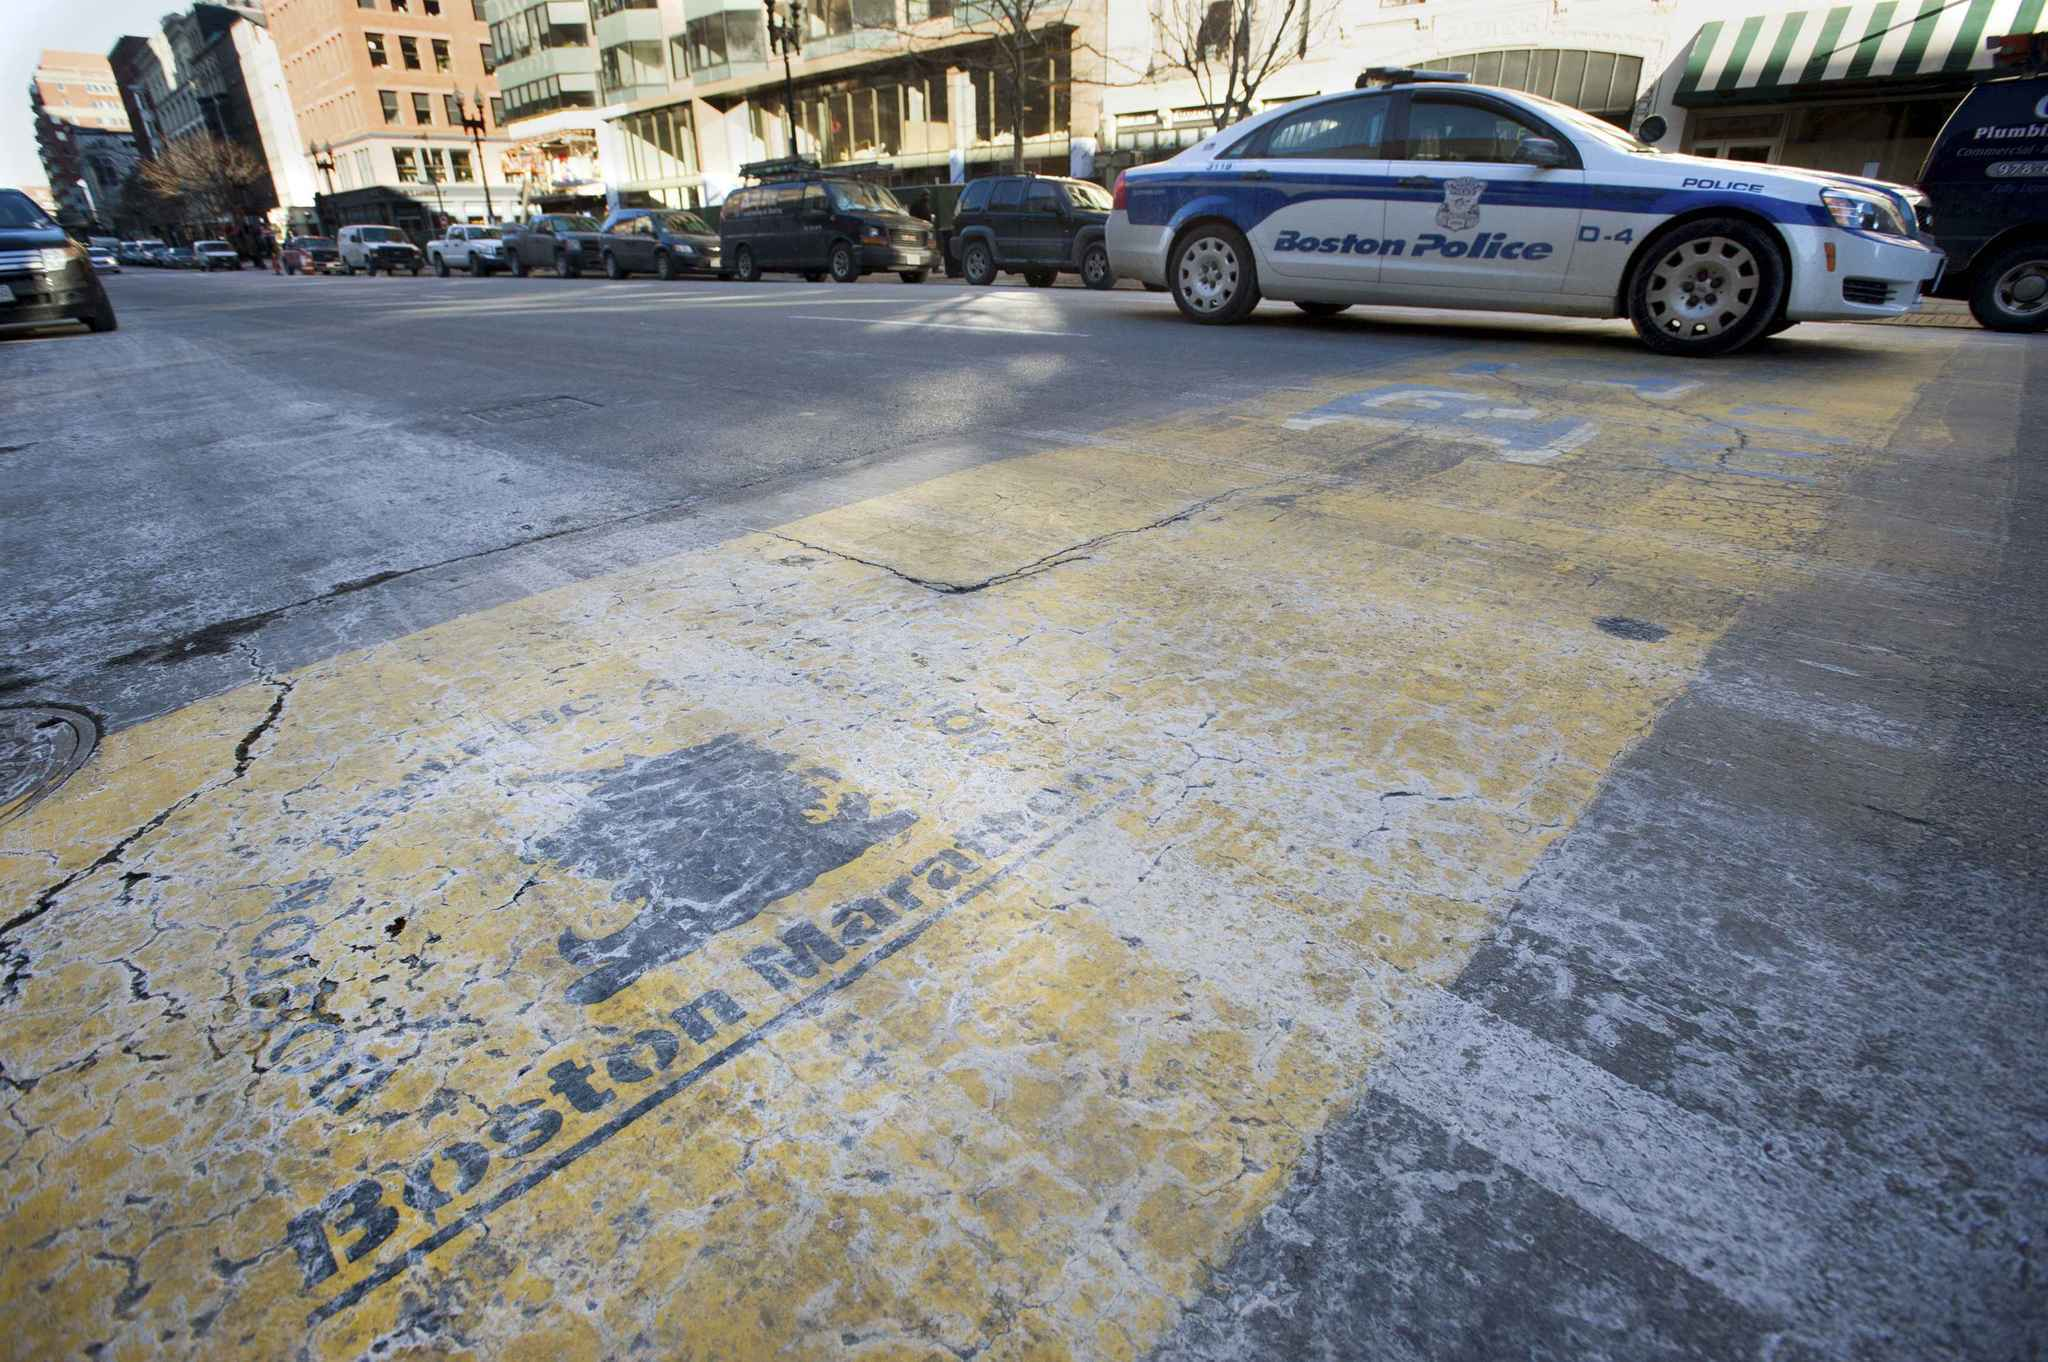 A Boston police car drives over the painted finish line from last year's Boston Marathon. Even as police prepare for a massive presence at Boston's first marathon since the 2013 bombing attack that killed three people and injured 264, officials acknowledge the sheer scale of the event poses inevitable security risks.